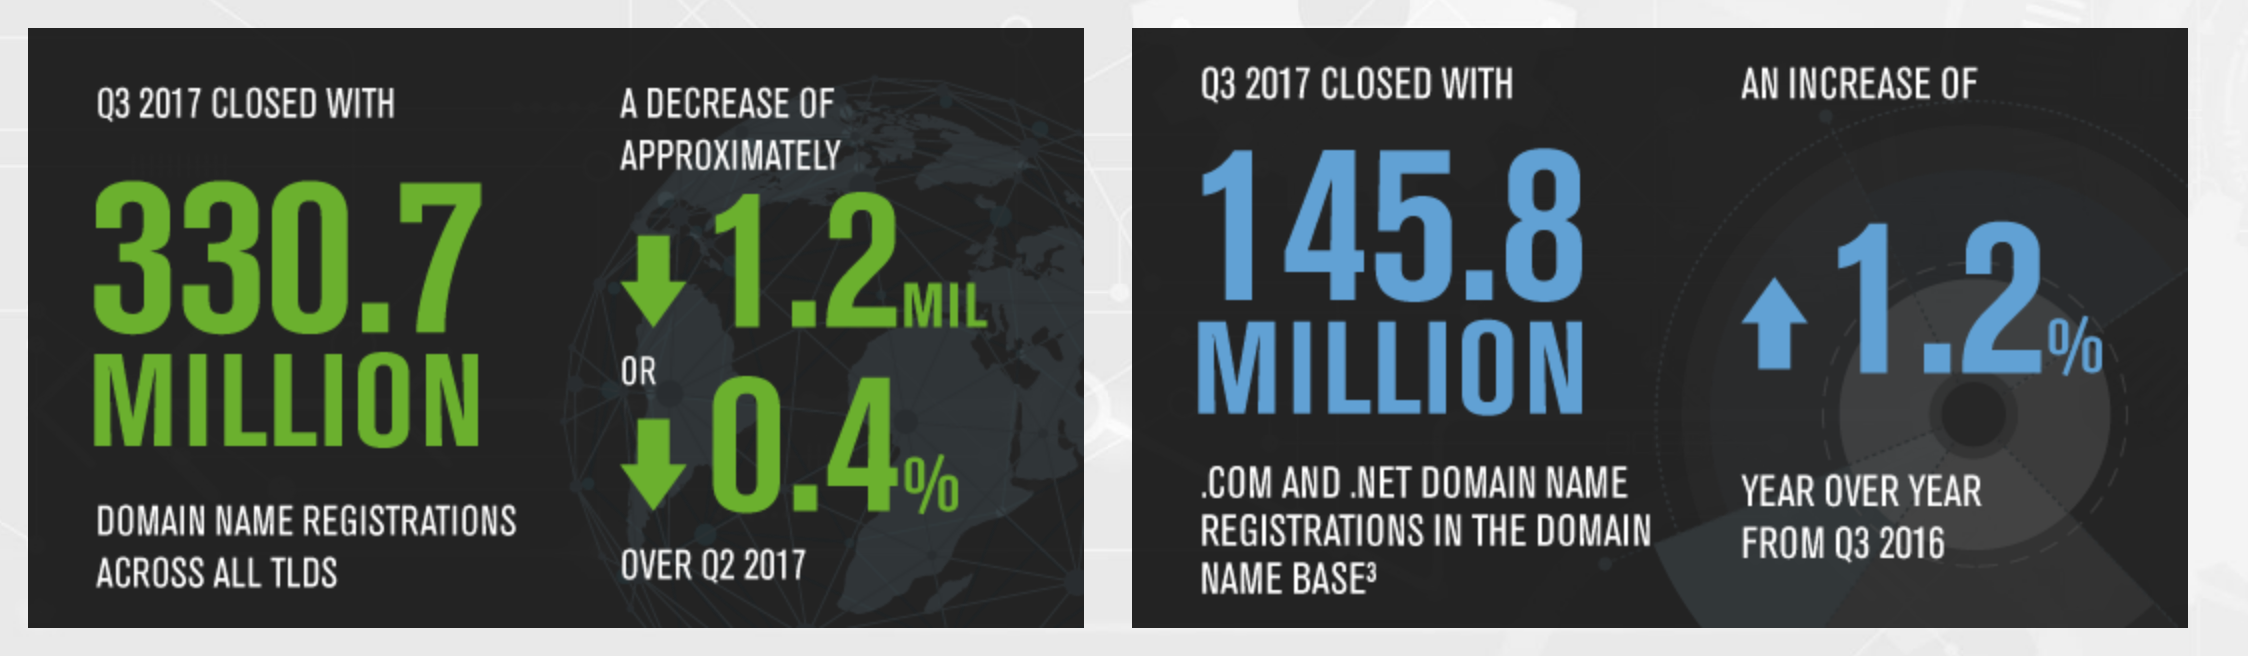 Total .com .net domain registrations